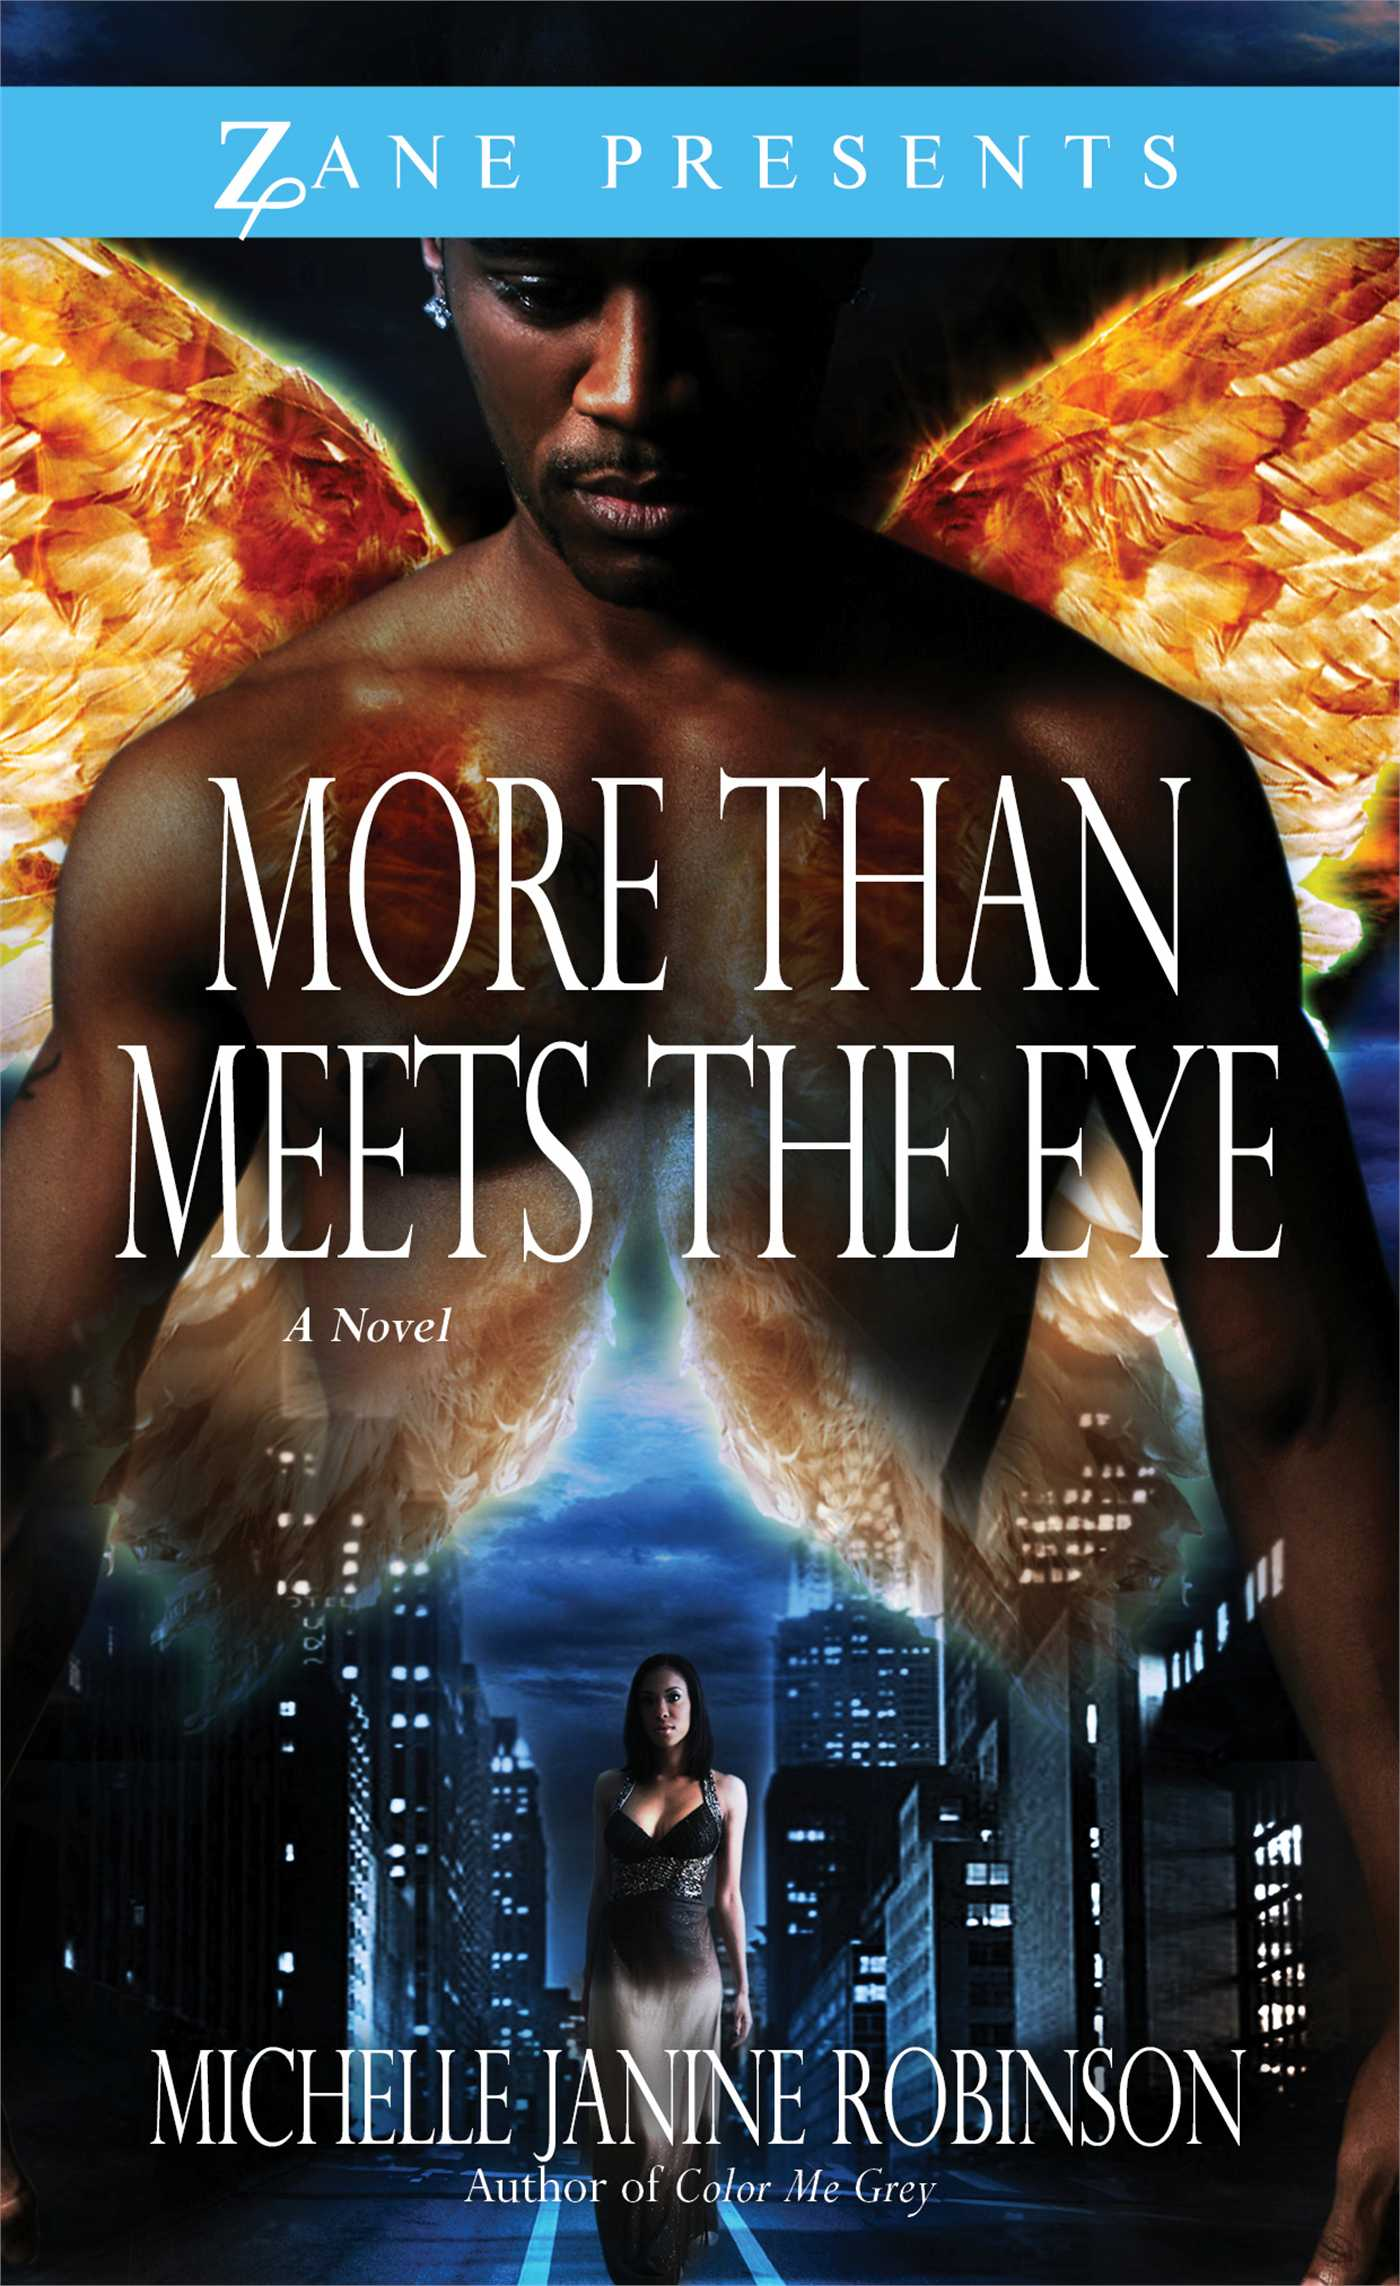 More than meets the eye 9781593092924 hr